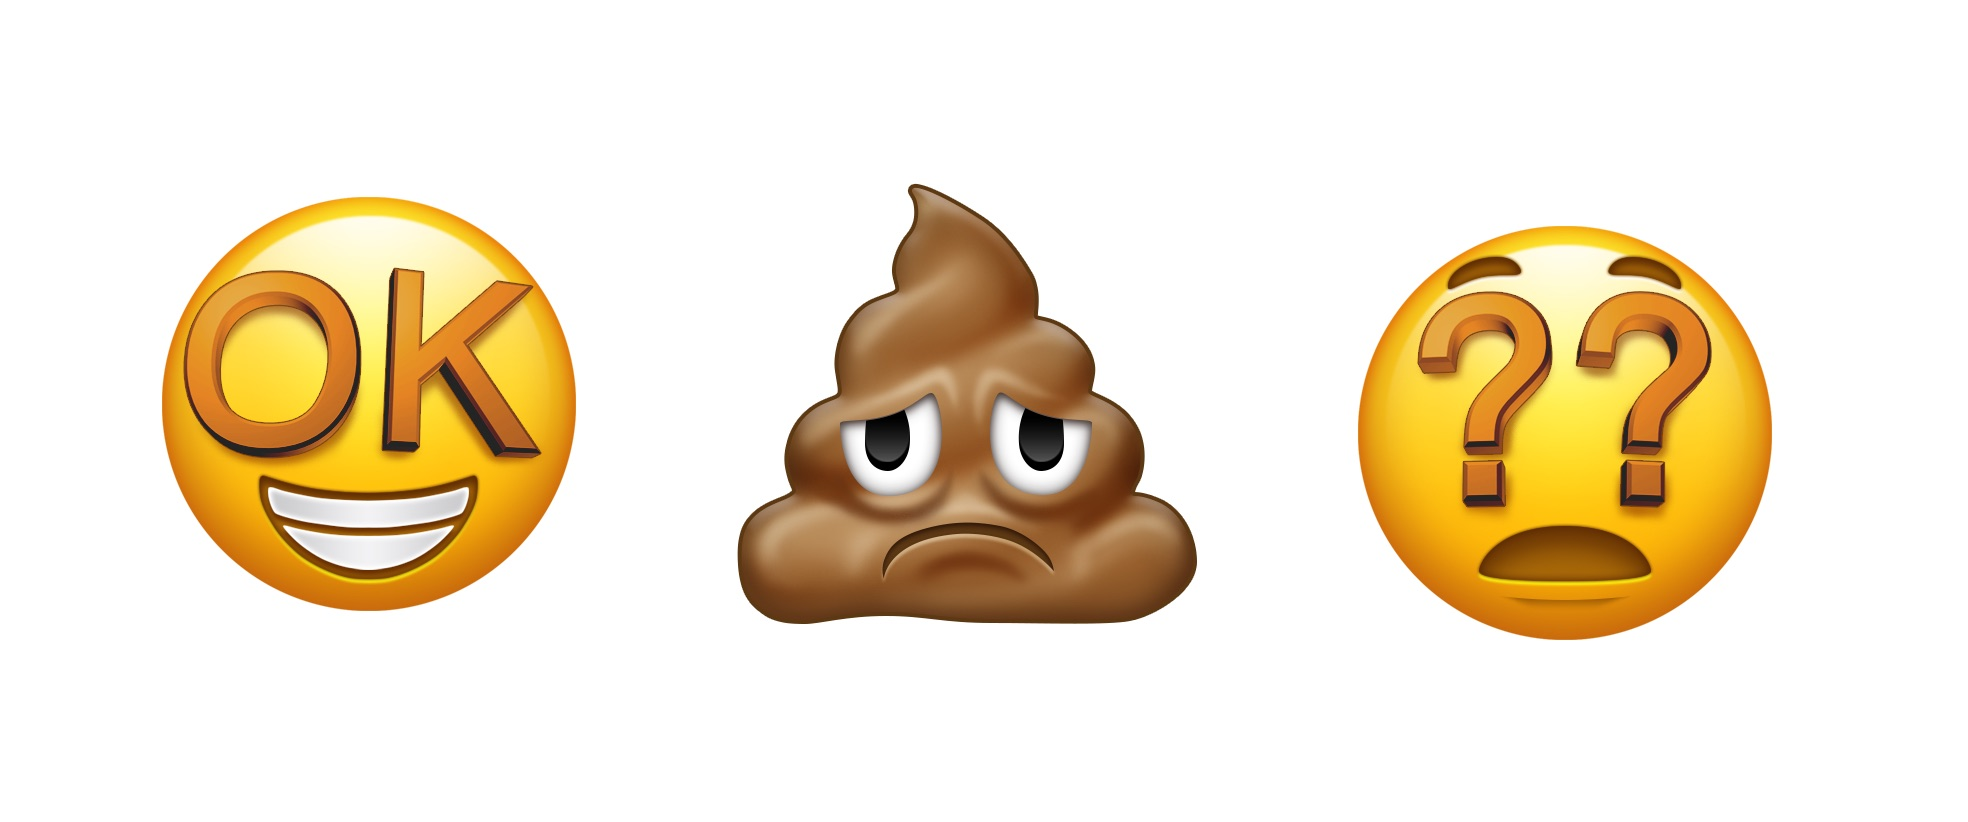 ok-frowning-poo-question-mark-emojipedia